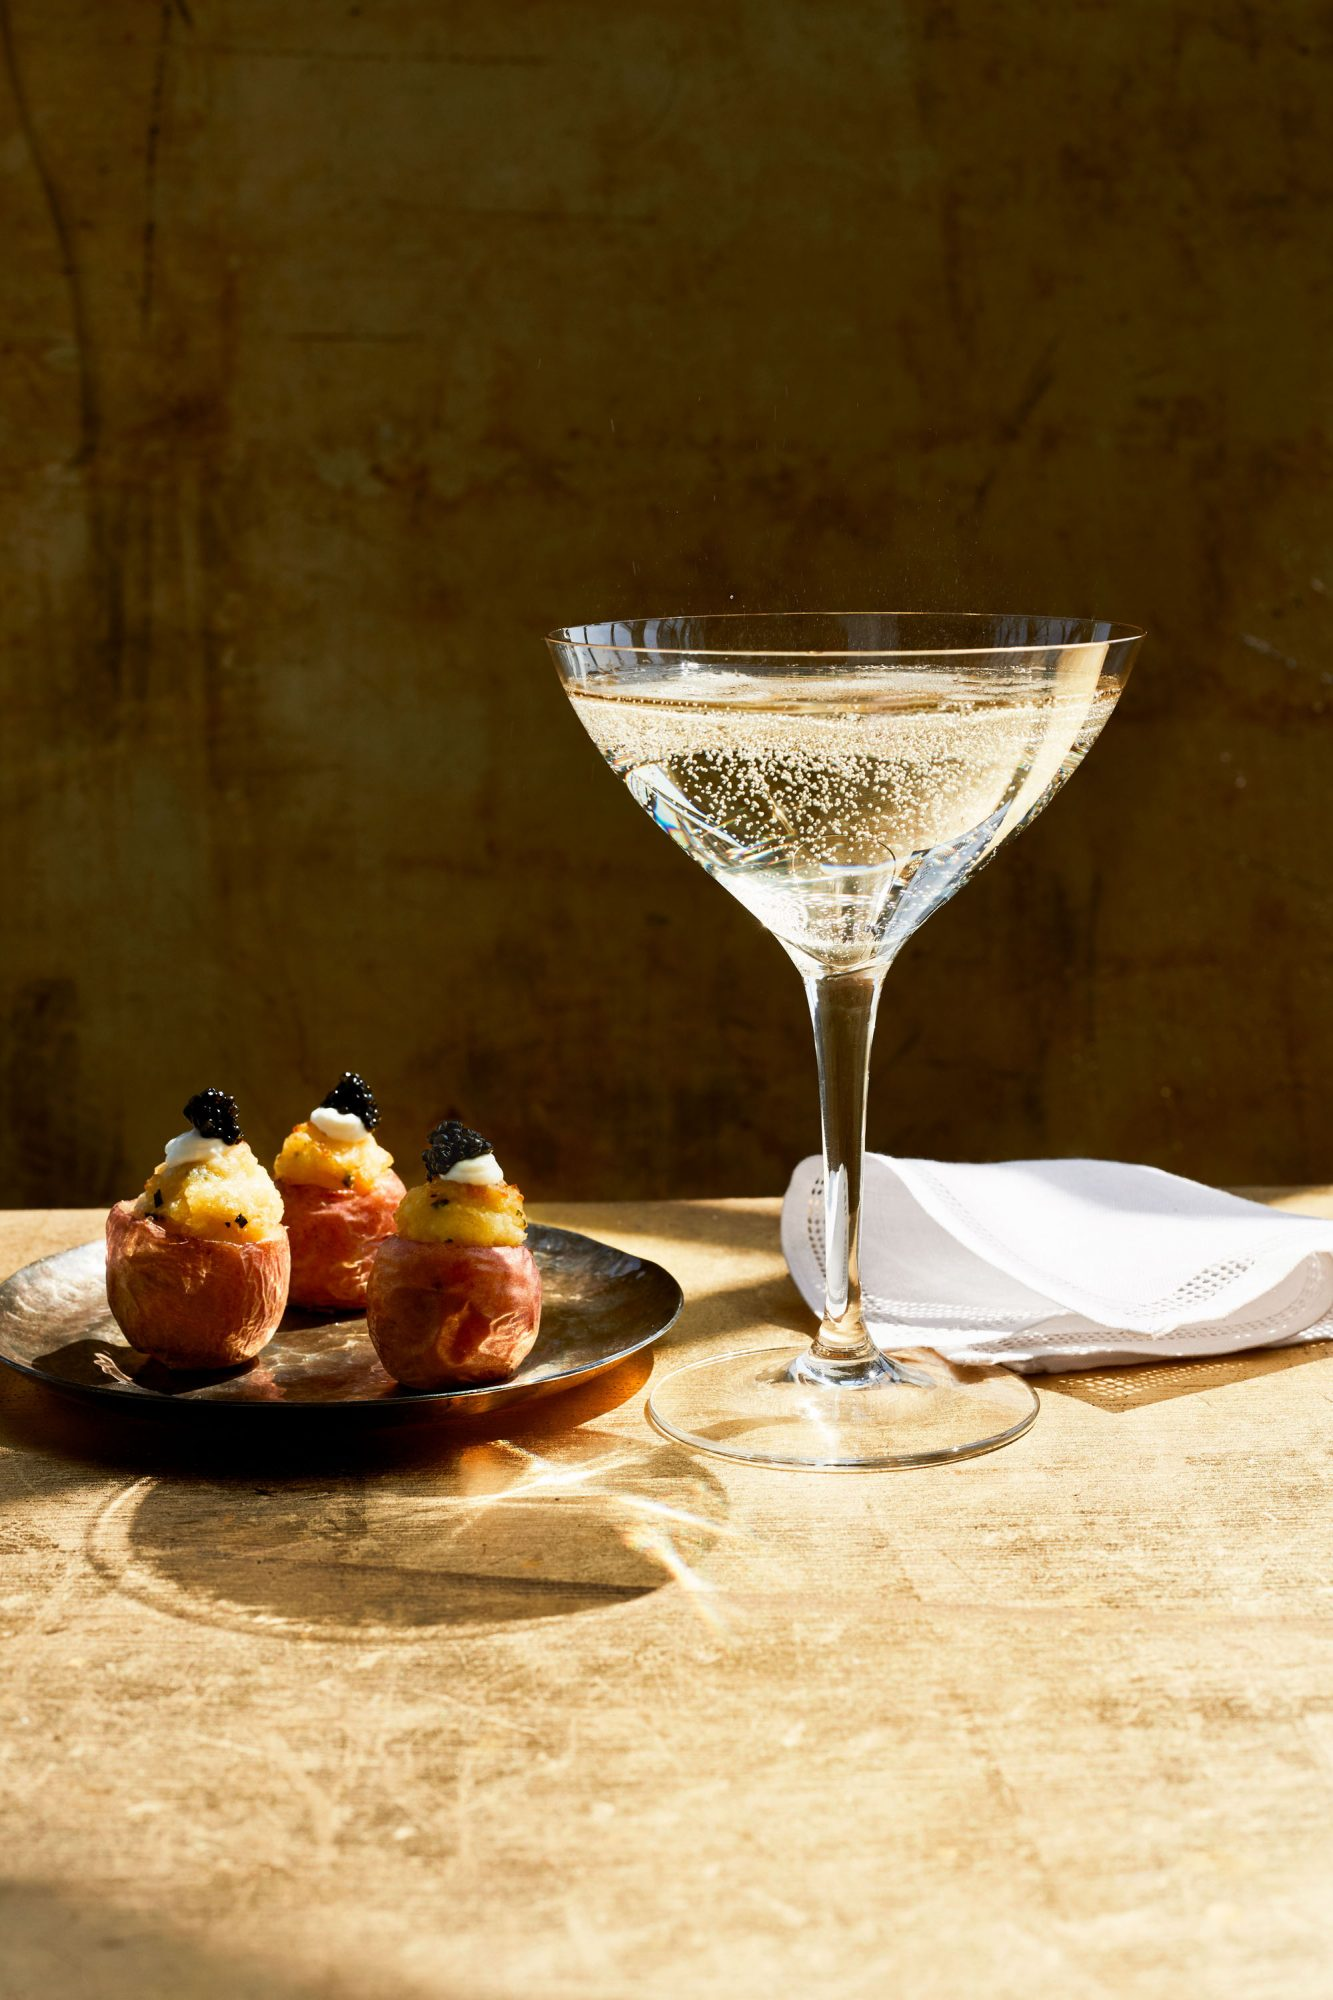 champagne and potatoes on table cloth